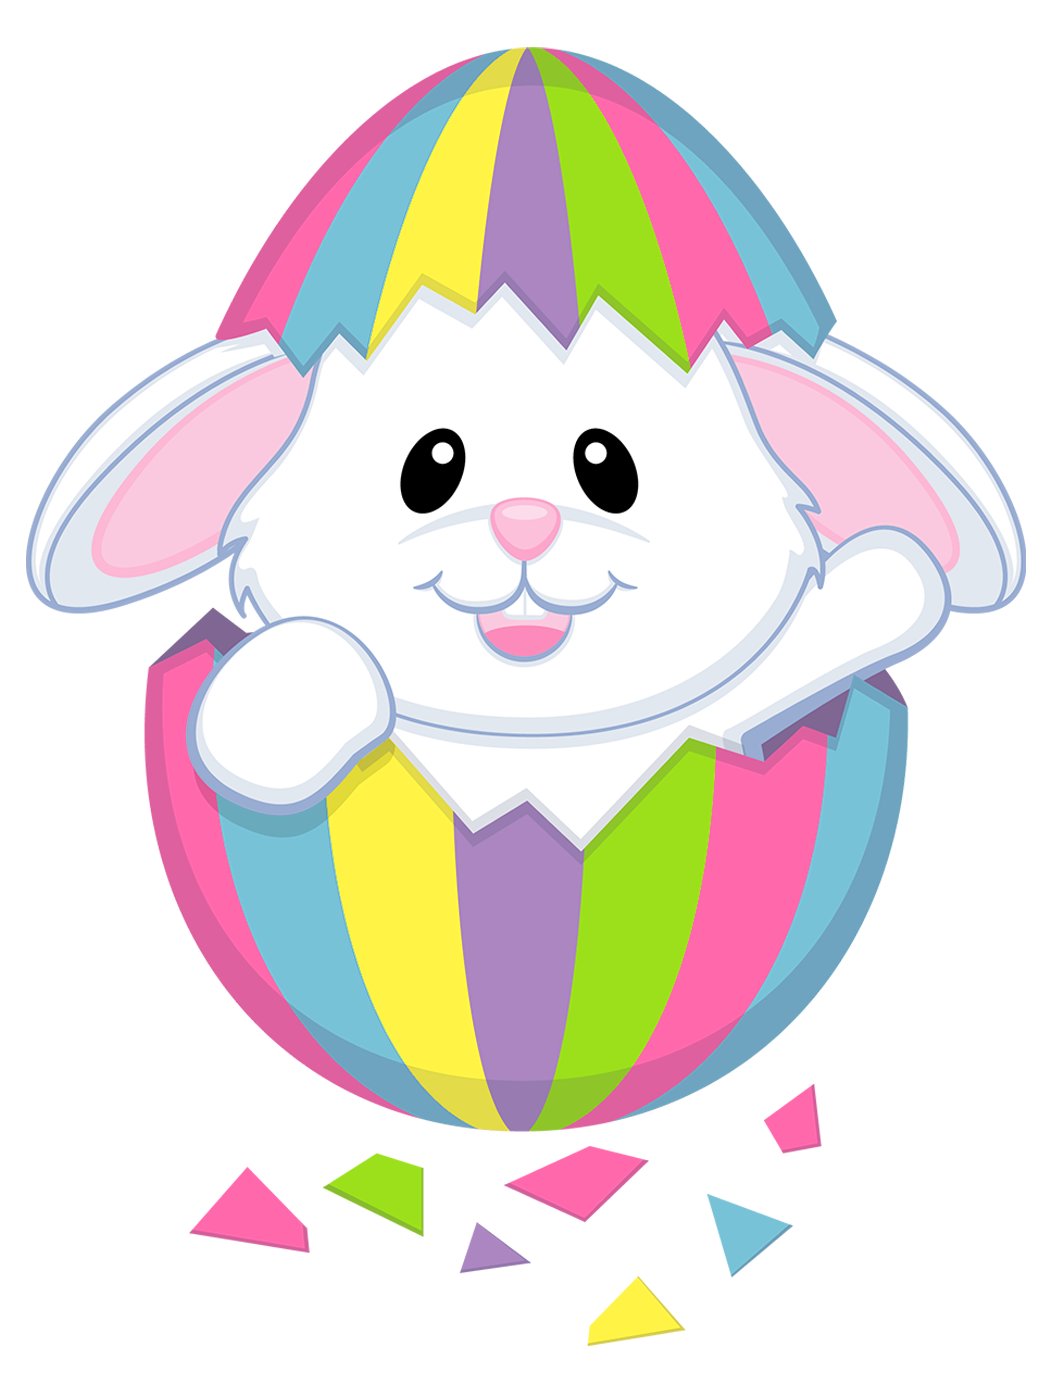 Google free clipart easter egg hunt image freeuse Easter Bunny - ClipArt Best | Easter eggs | Pinterest | Easter bunny ... image freeuse